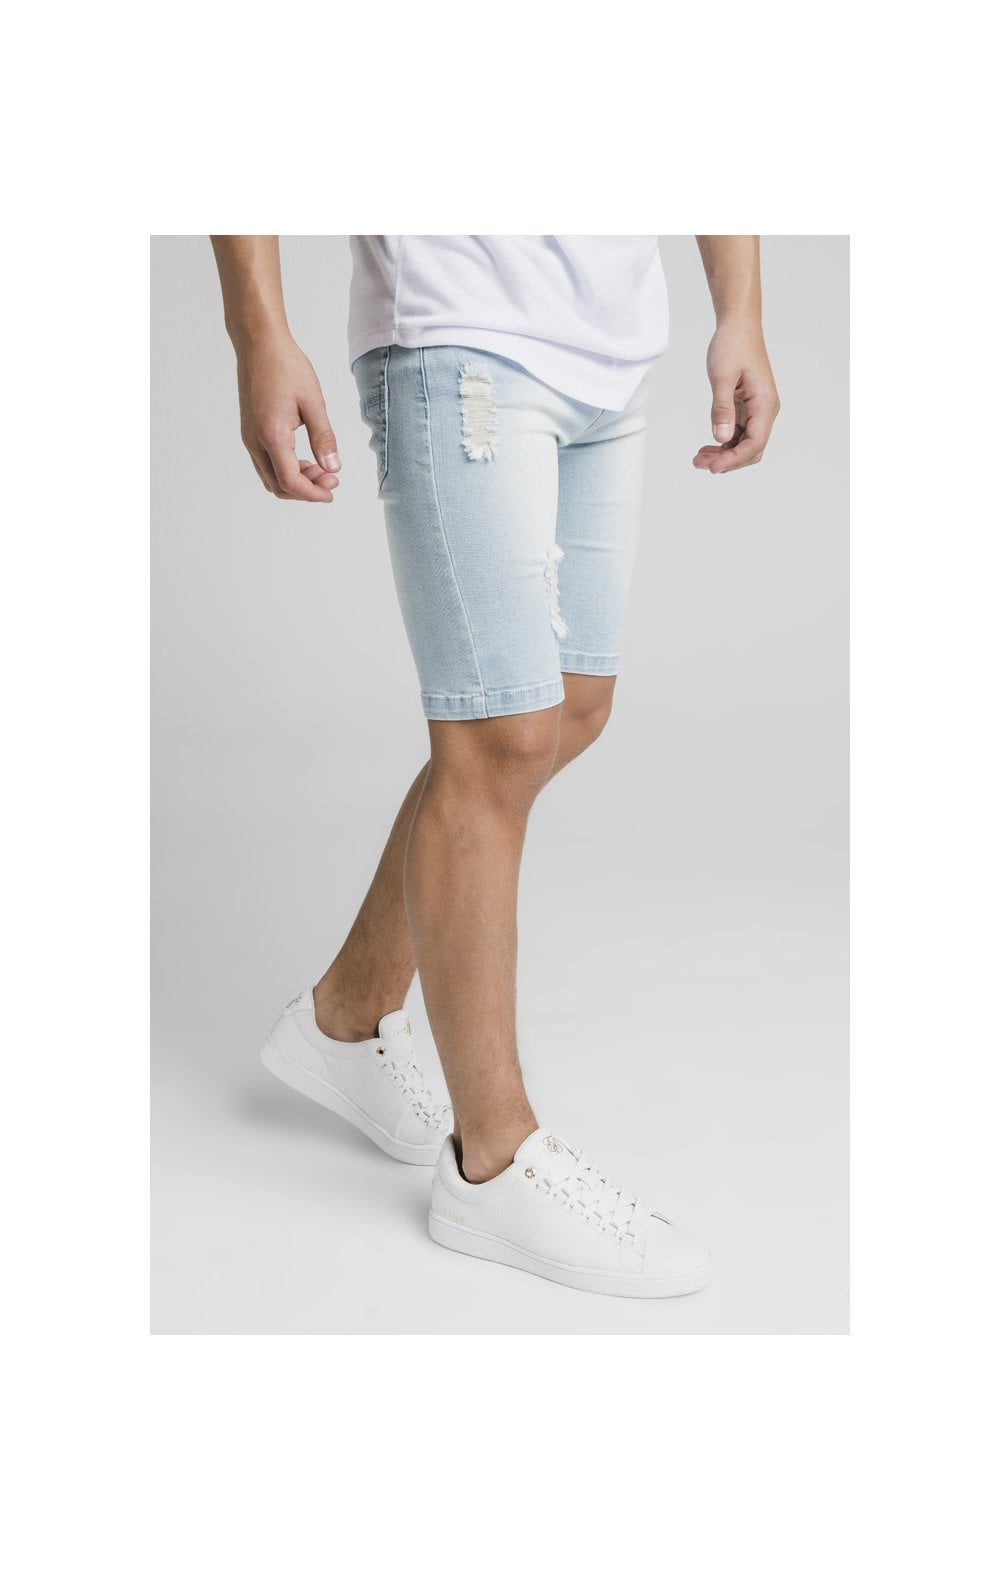 Load image into Gallery viewer, Illusive London Distressed Denim Shorts - Light Blue (1)